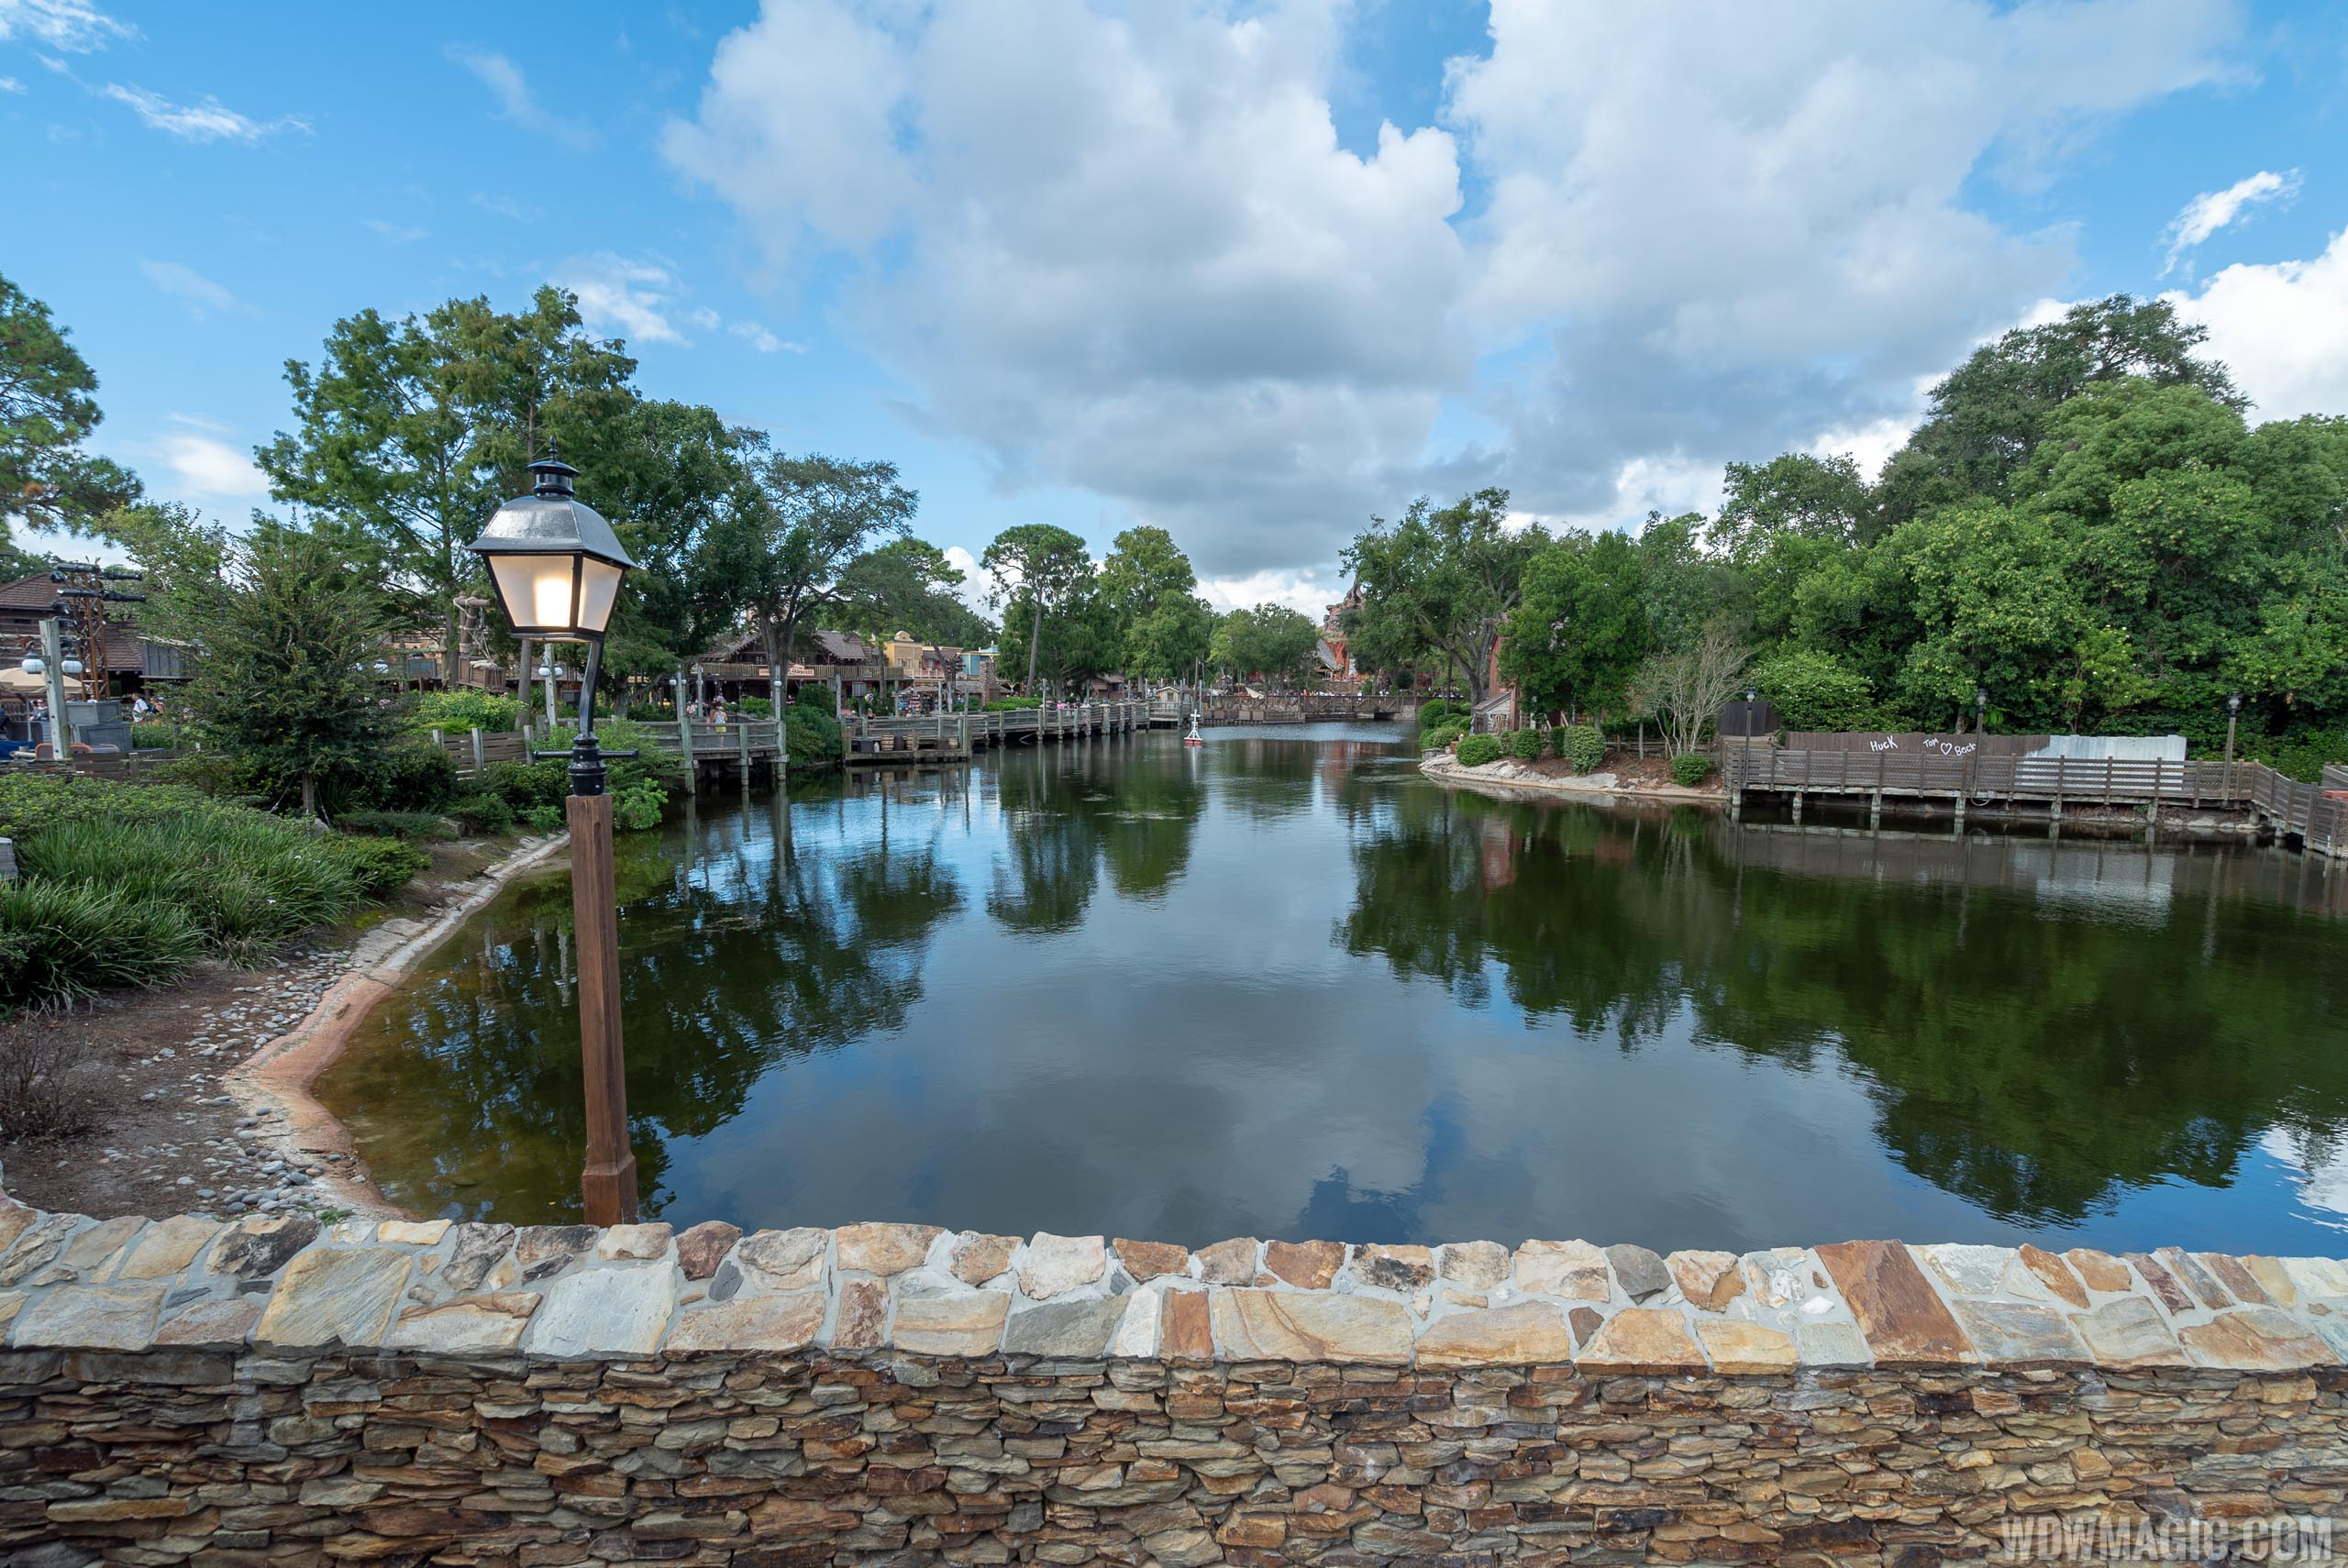 Rivers of America refilled after refurbishment